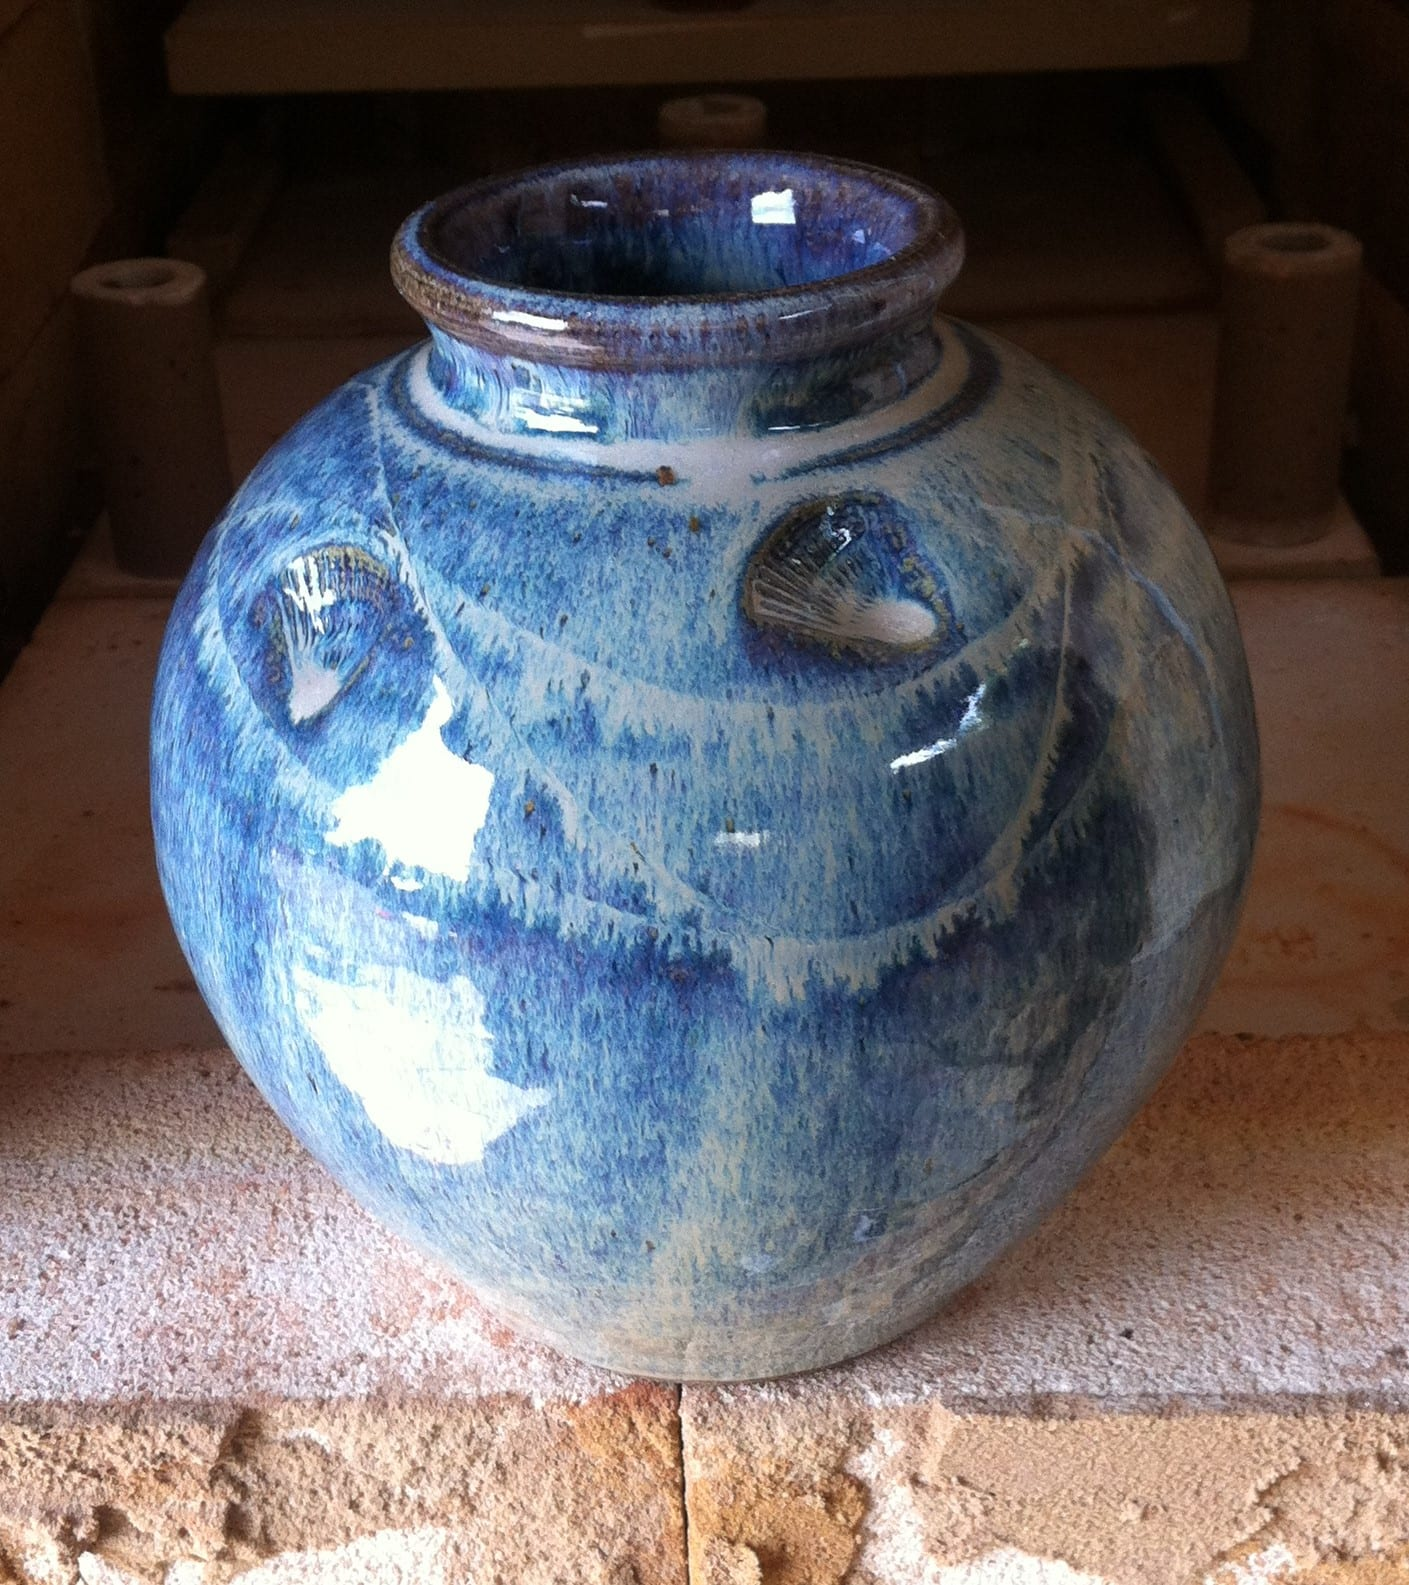 Welcombe pottery shell vase